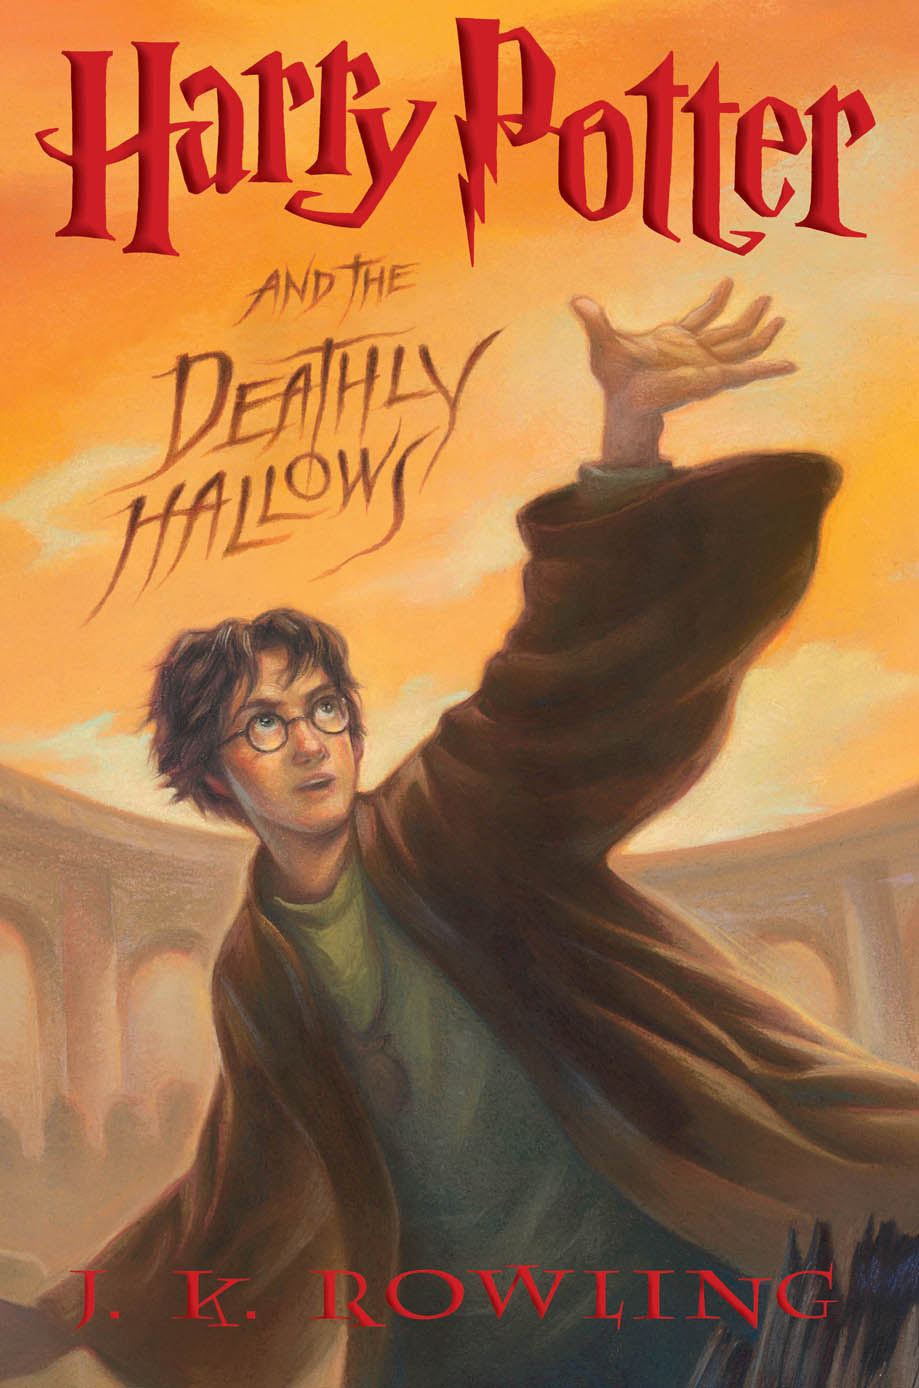 The original US cover art. Incidentally, I've always loved how the artwork for the  Potter  covers use a scene as a set piece to show off, although you couldn't figure out what until after you read the book. In this case, it's the finale!